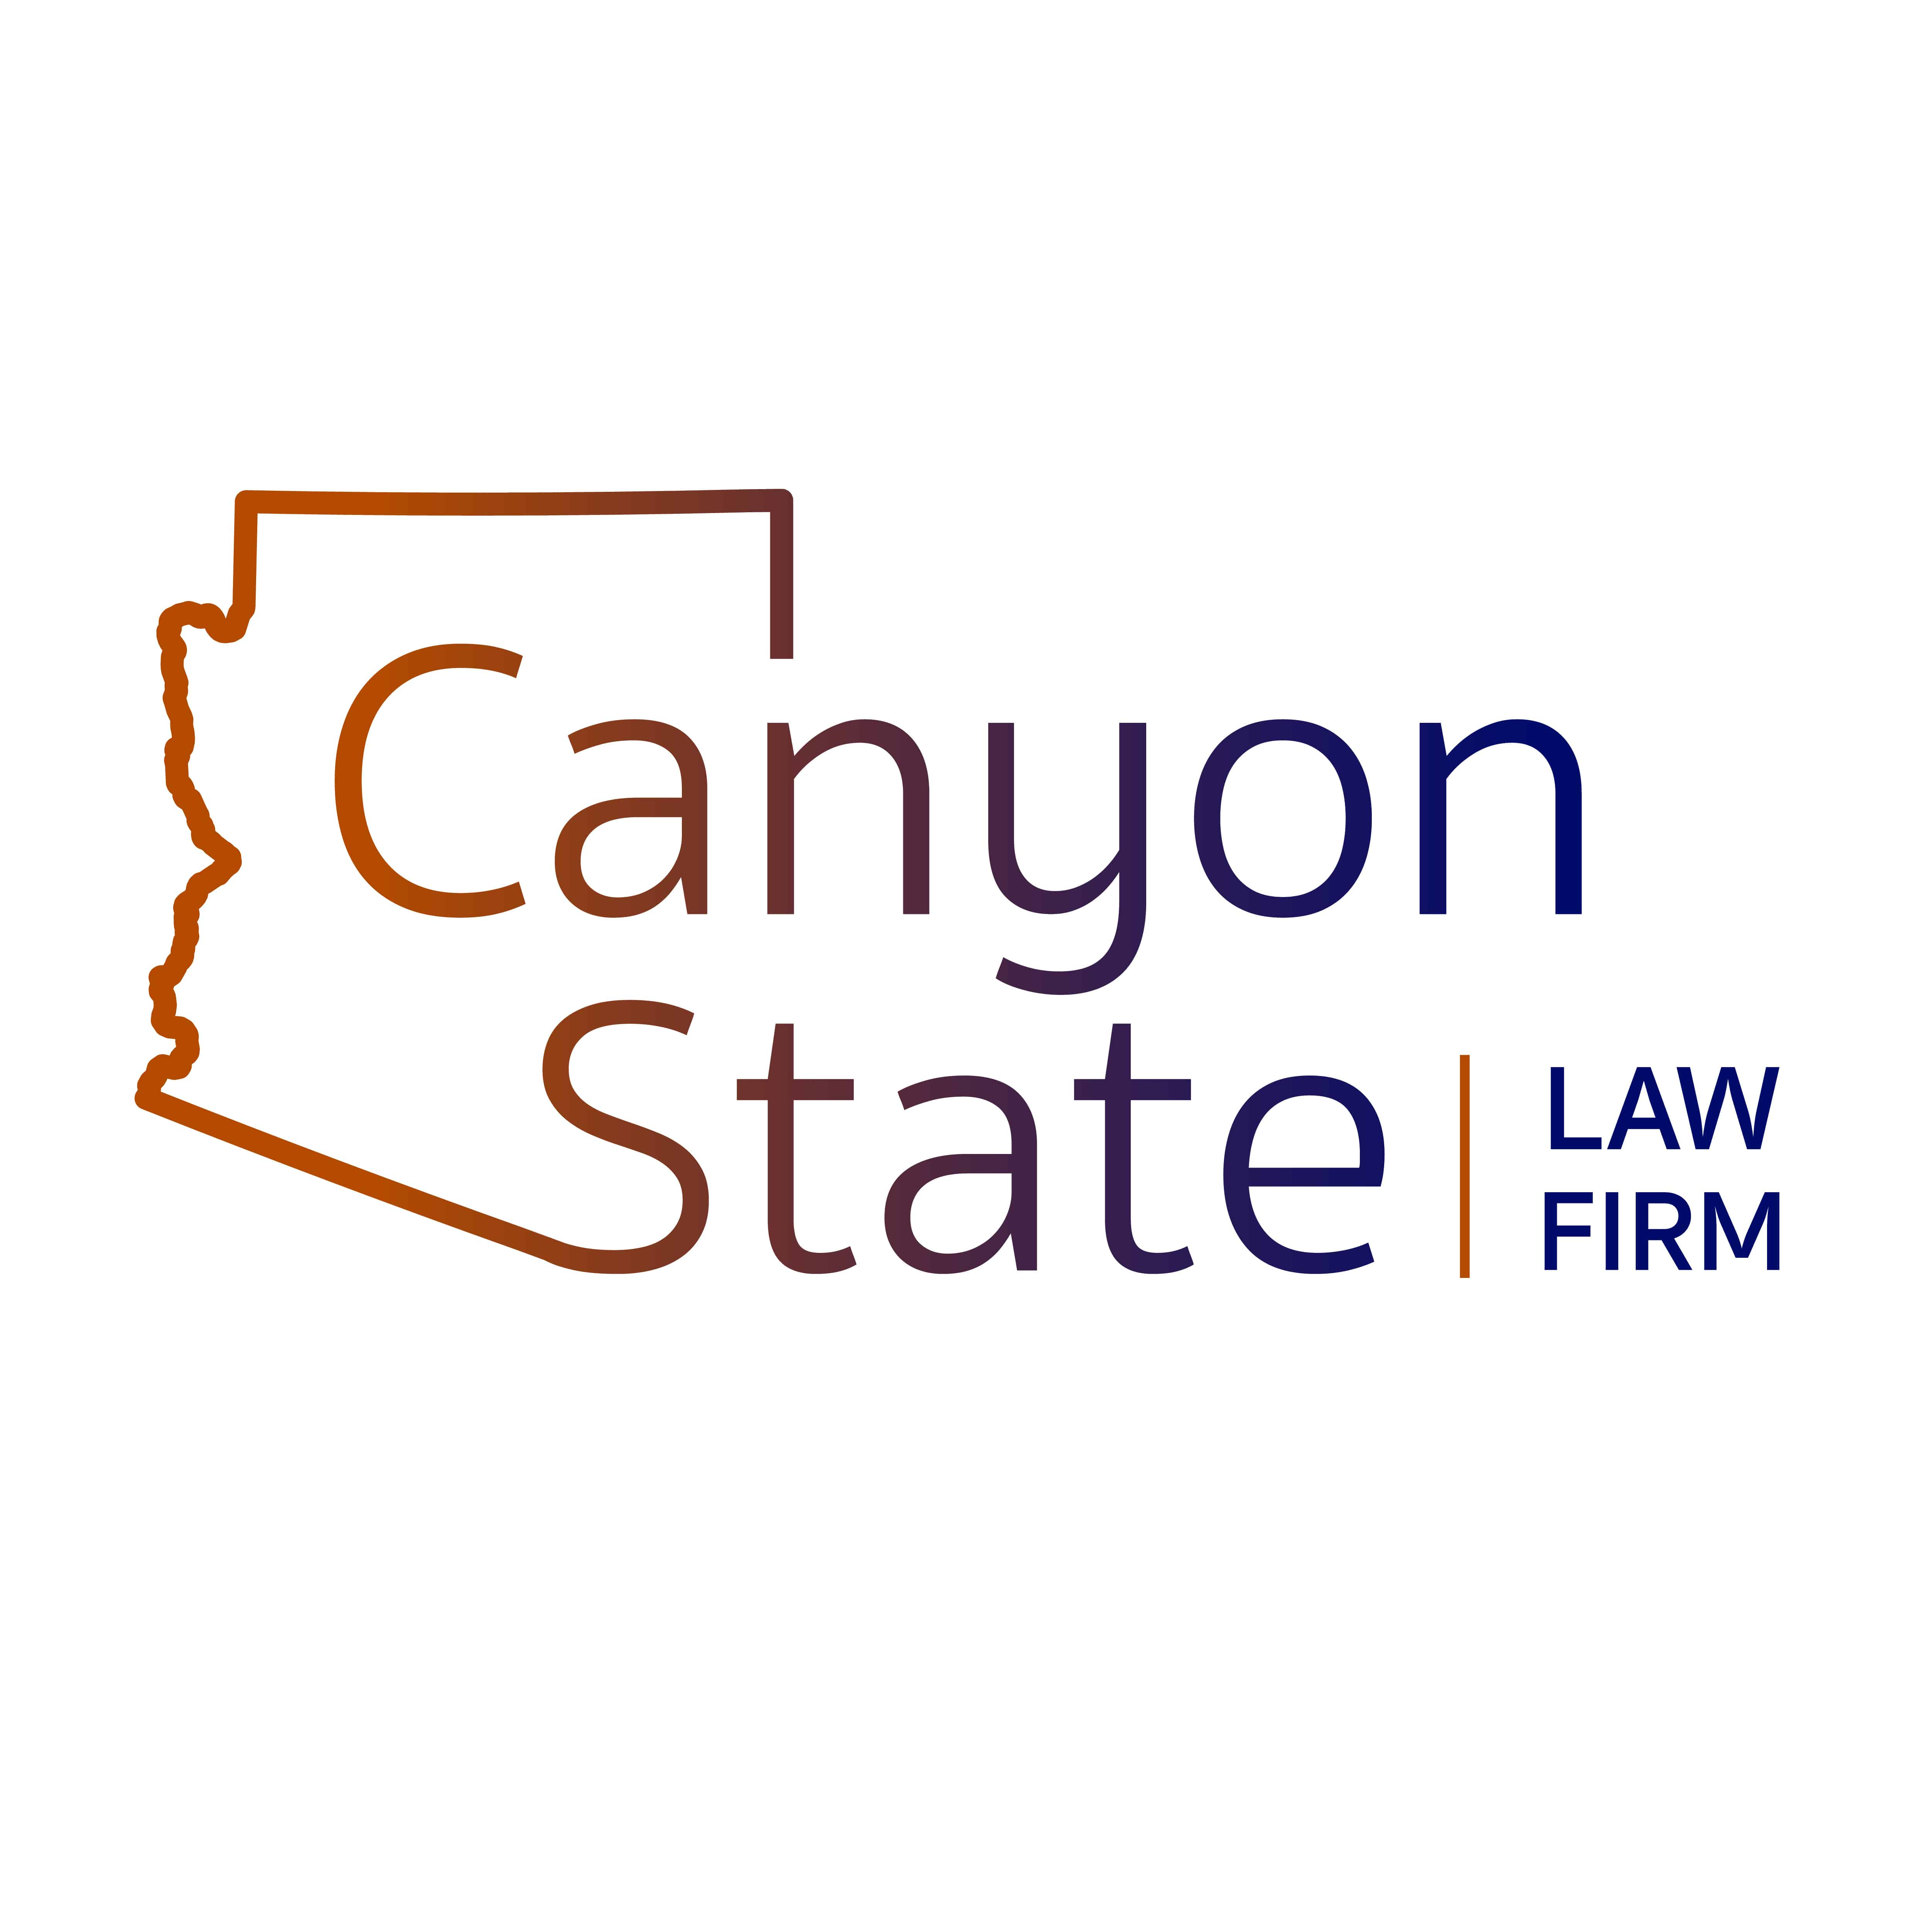 Canyon State Law - A Reputable Criminal Defense Attorney in Chandler, AZ